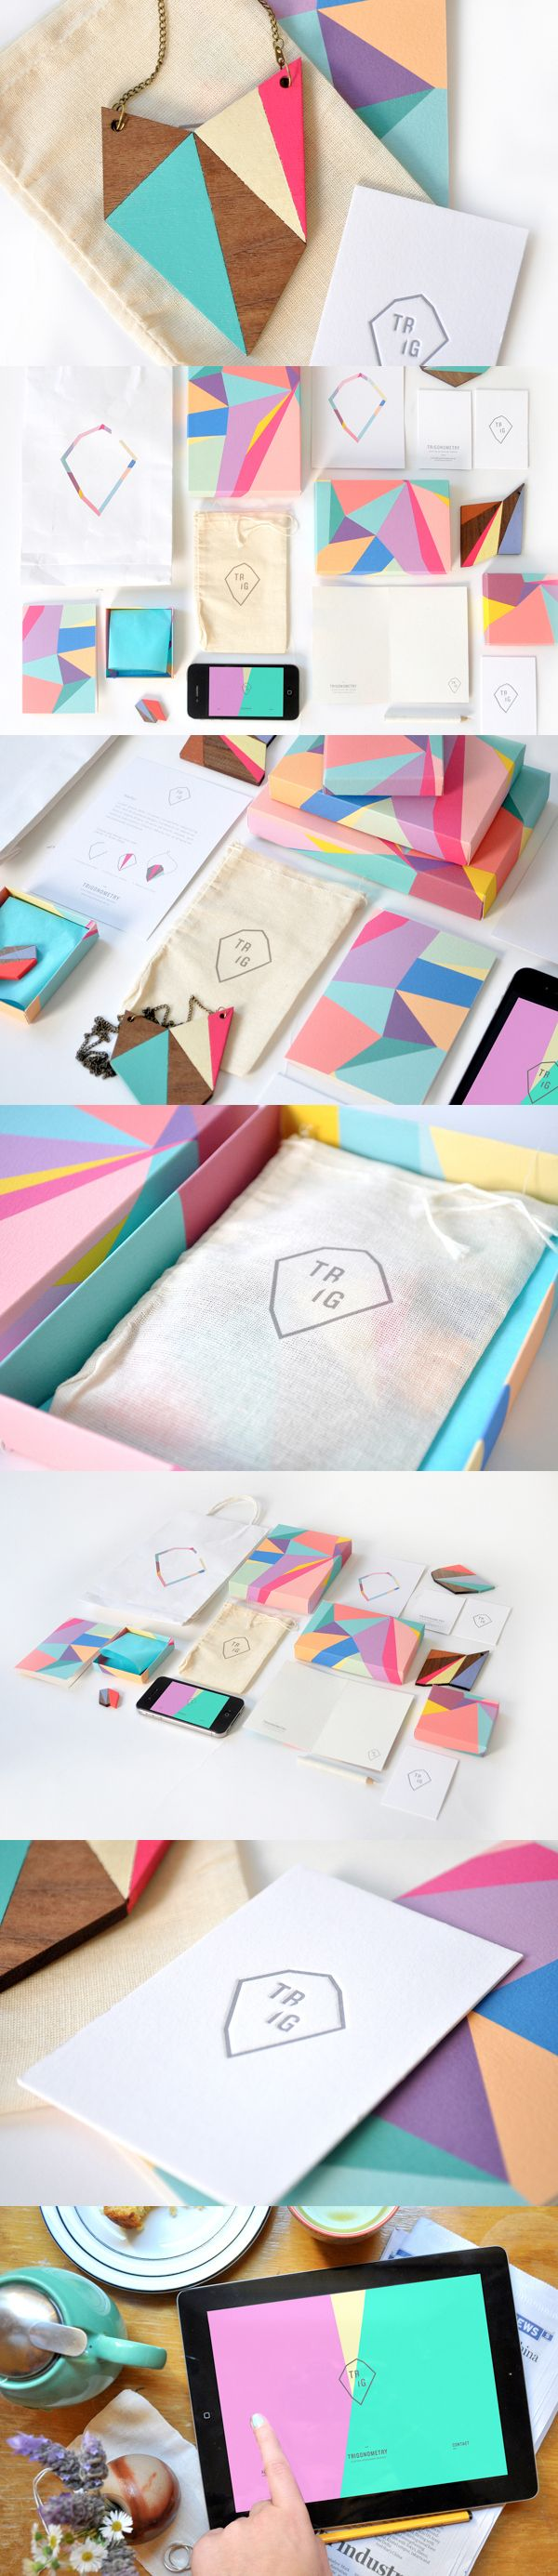 Colours-  Colourful, geometric branding & packaging design for Trig app, which lets customers design their own personalized jewelry - by Sydney-based Olivia King https://www.behance.net/gallery/8511731/Trig